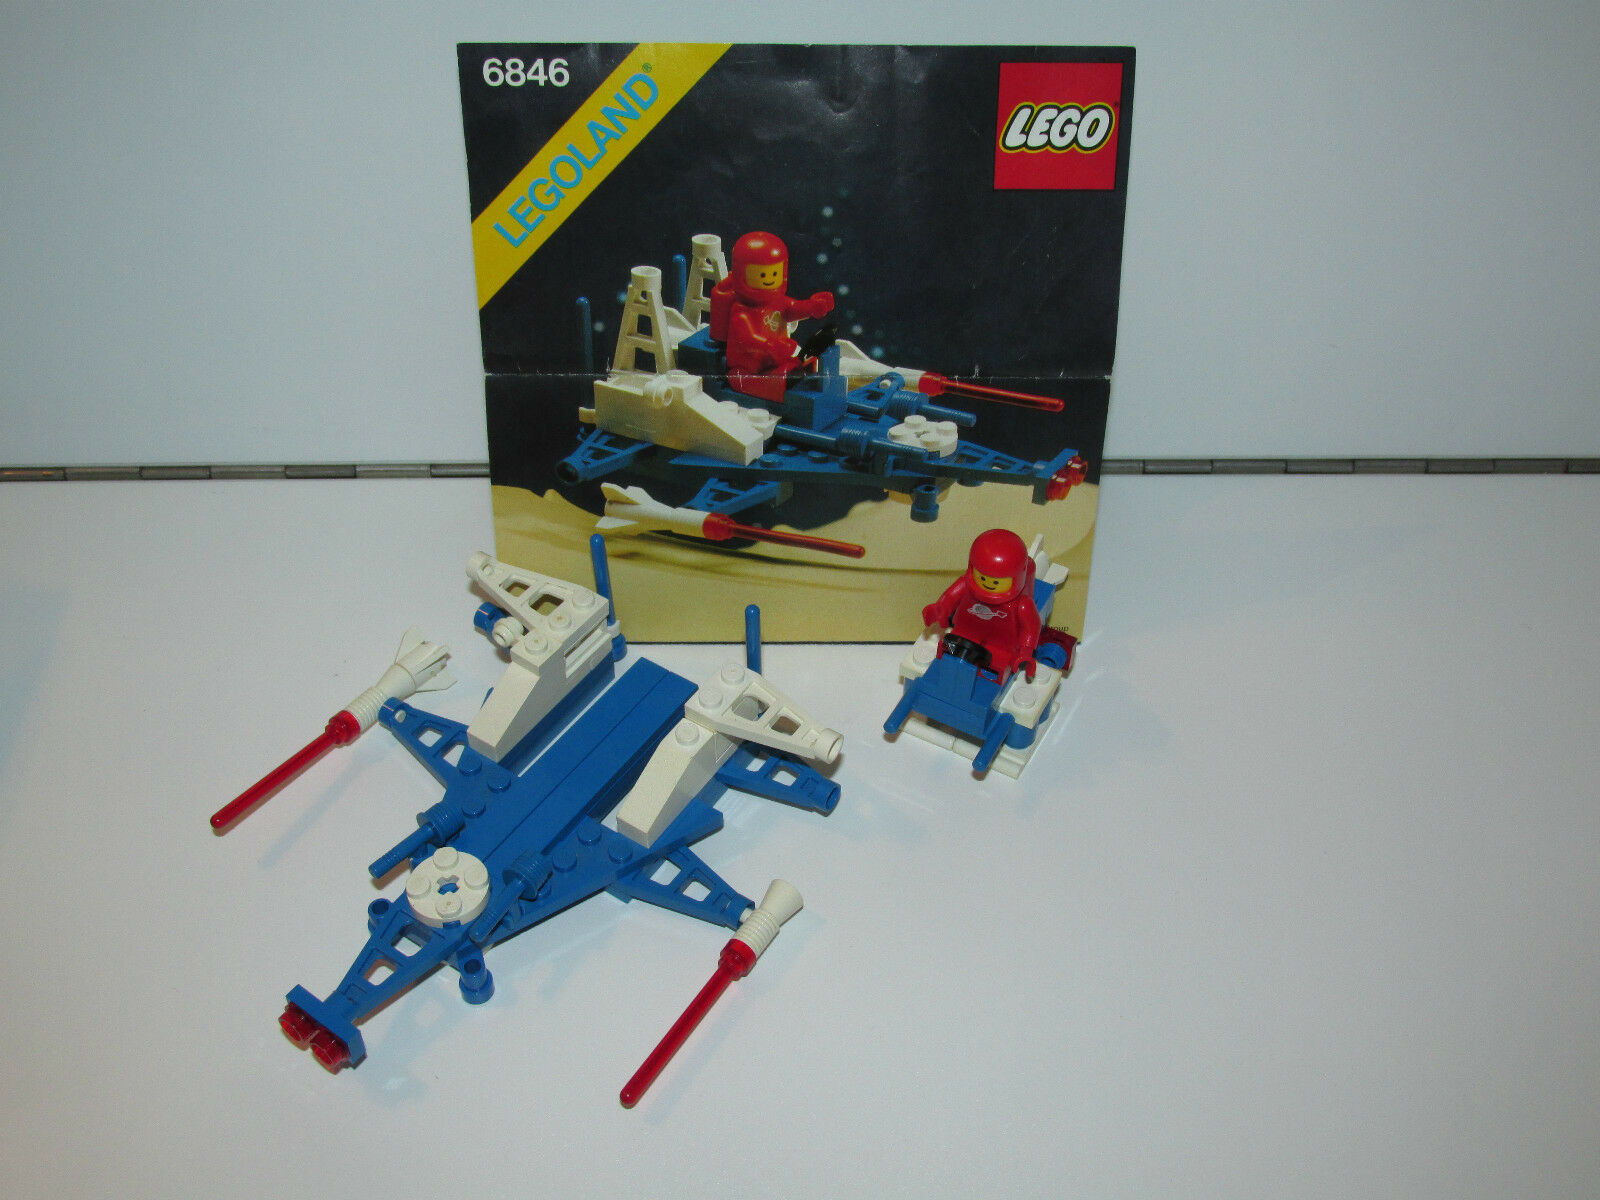 LEGO SPACE No 6846 TRI-STAR TRI-STAR TRI-STAR VOYAGER 100% COMPLETE IN ORIGINAL BOX 1980s 0bd37b